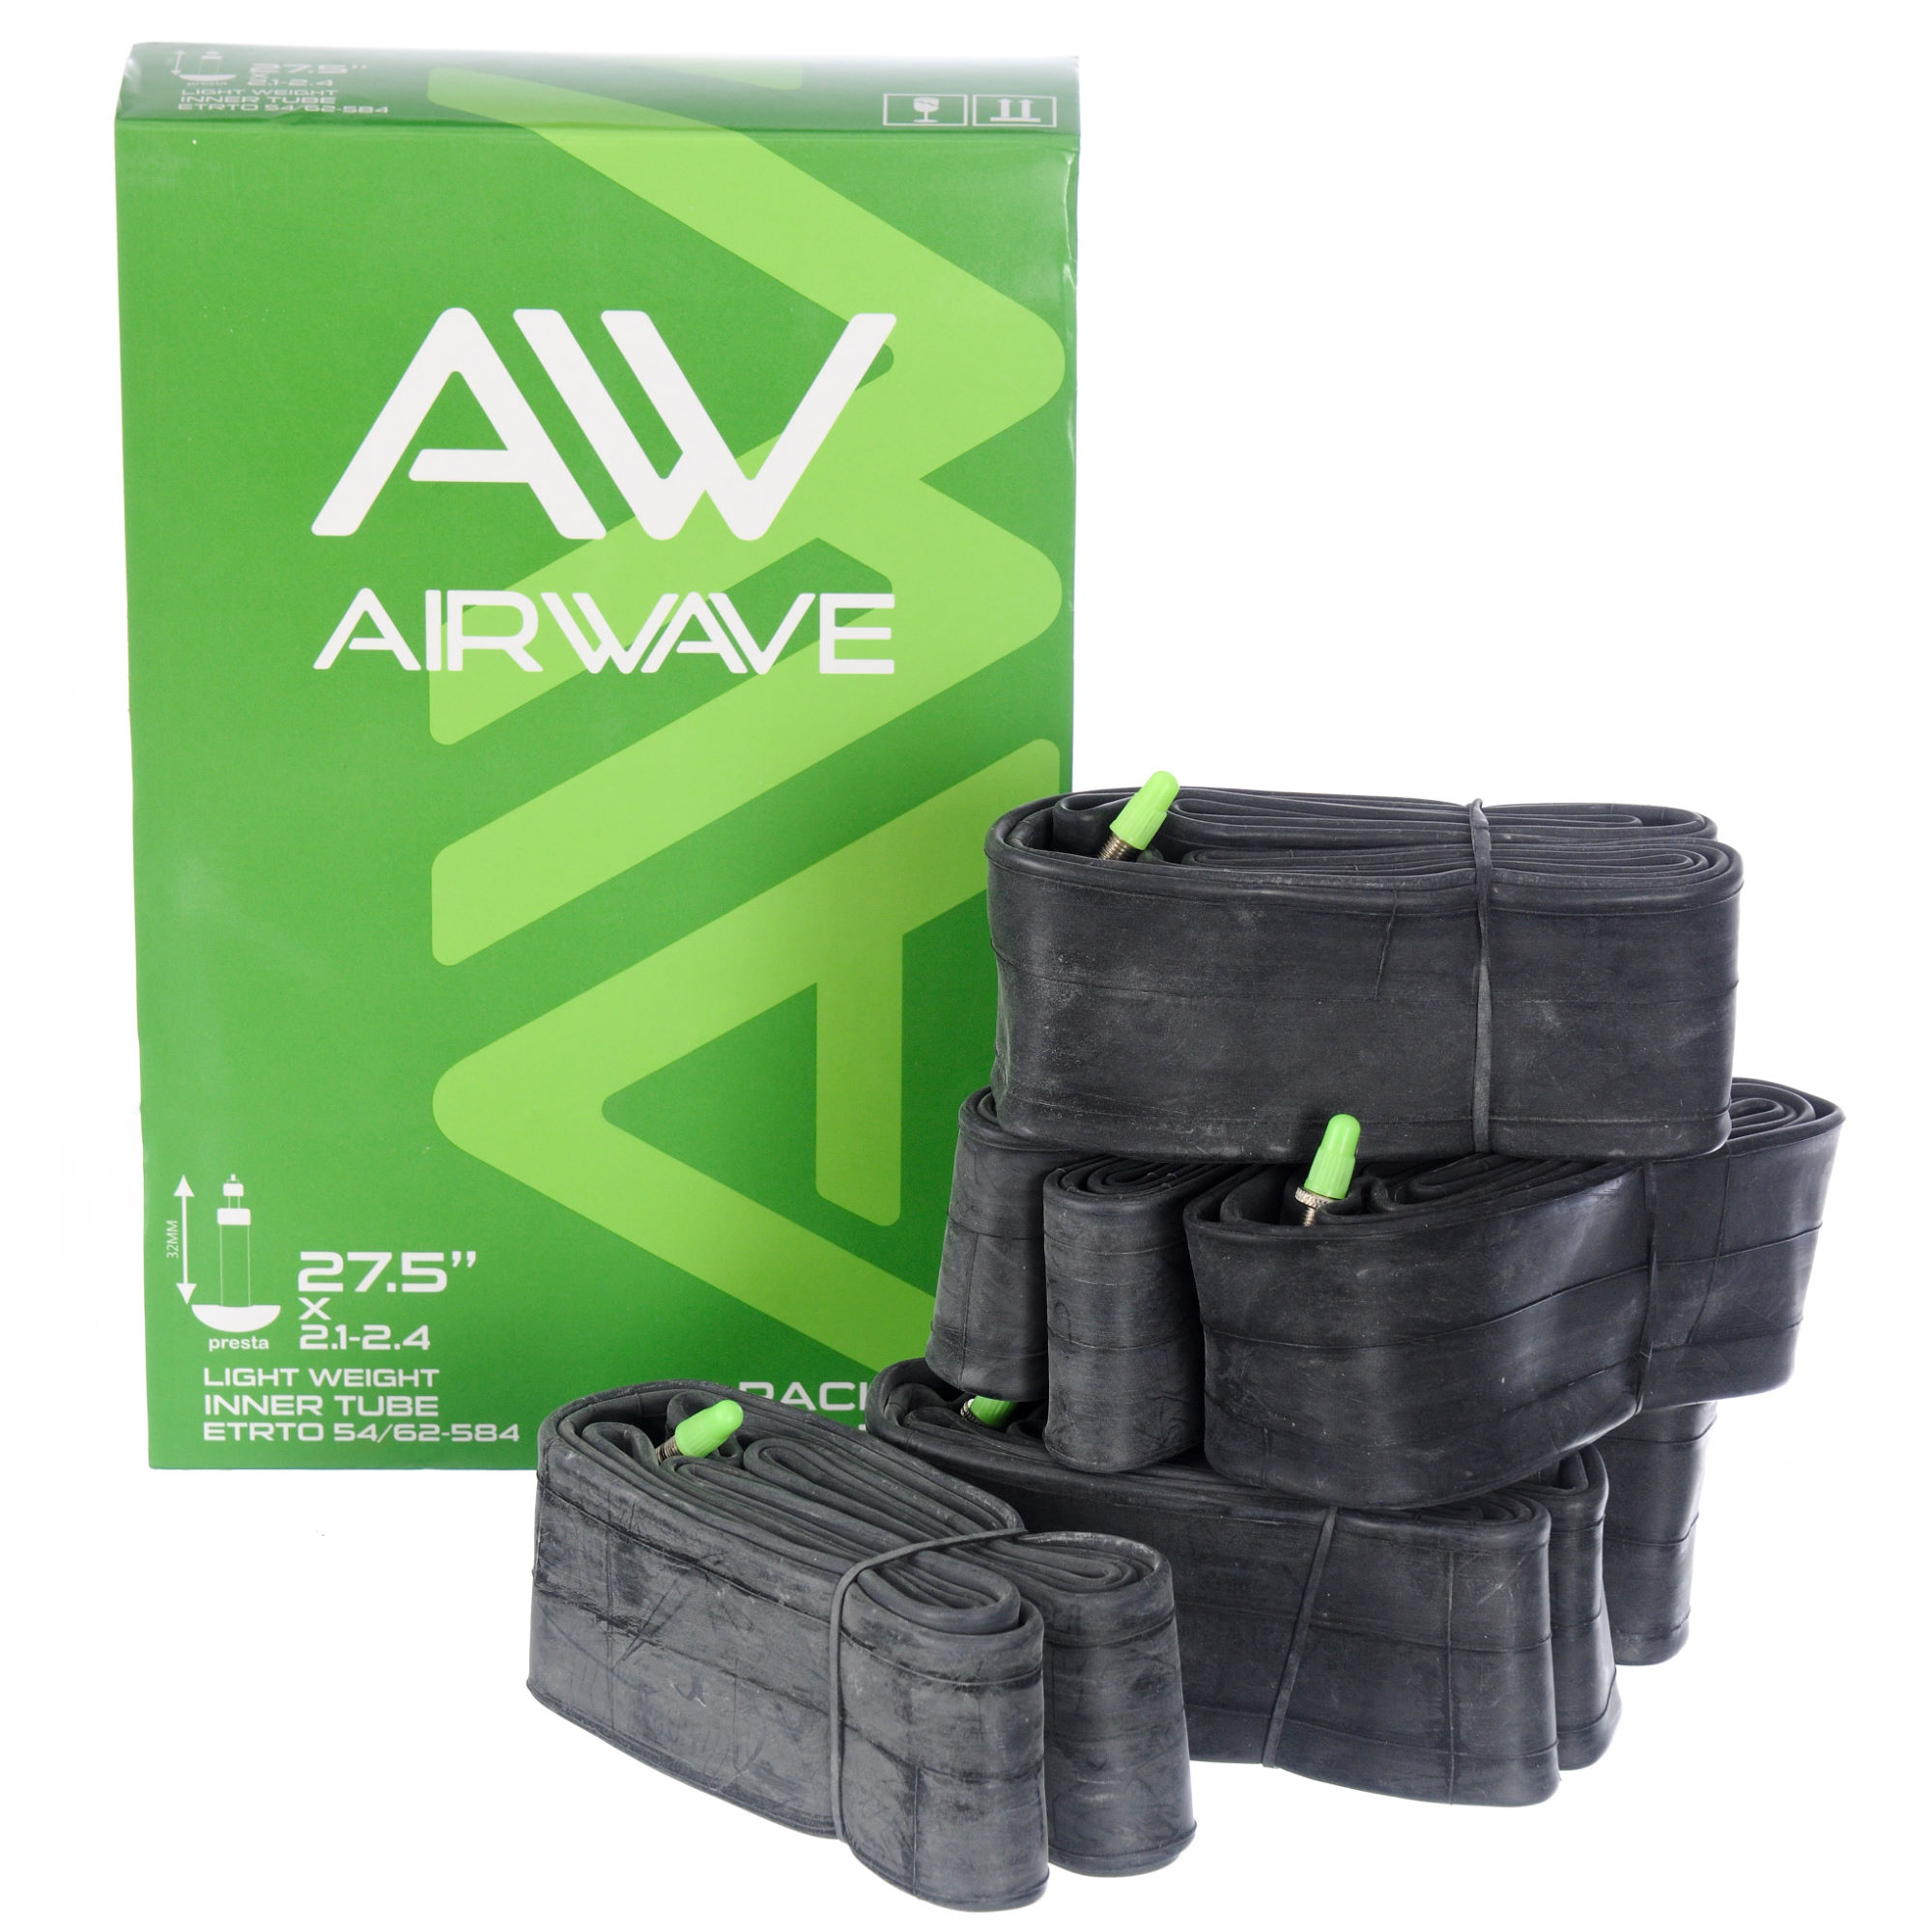 Chambres air vtt airwave mtb light weight tube 6 pack wiggle france - Vtt tubeless ou chambre a air ...